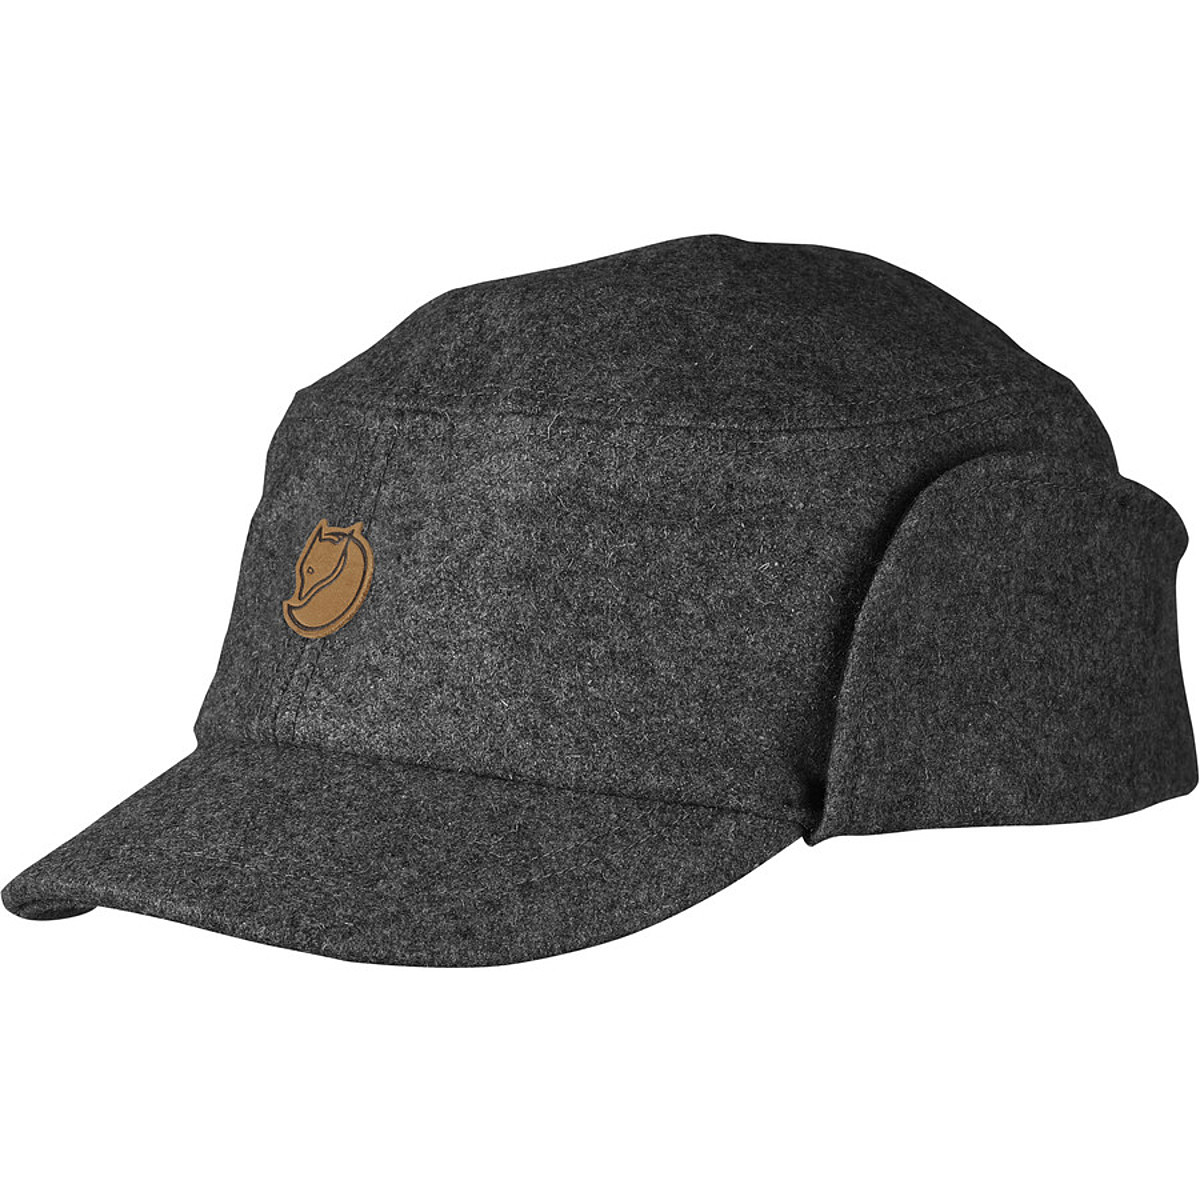 Fjallraven Sarek Winter Cap